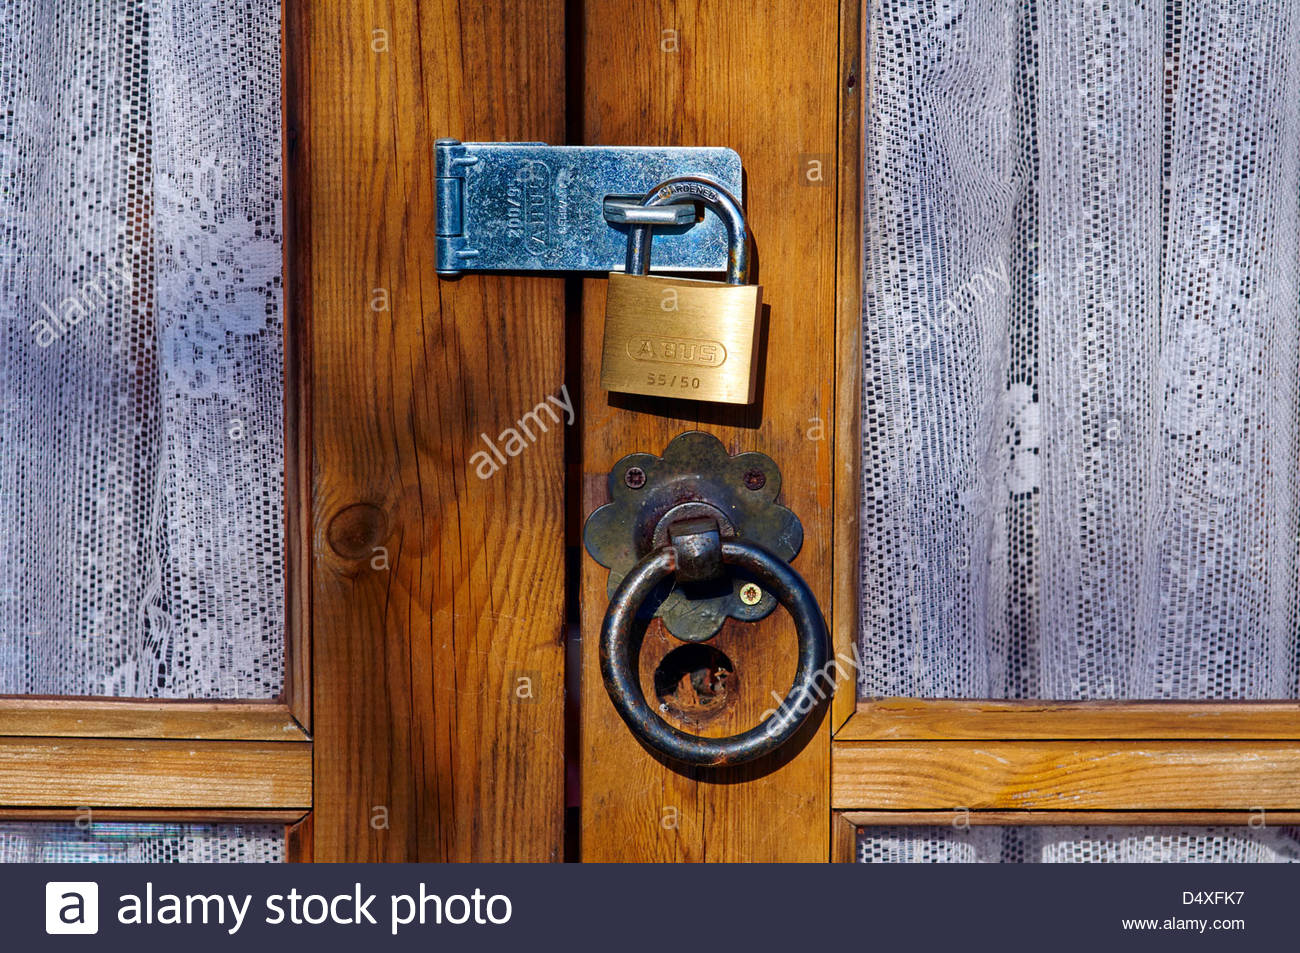 brass padlock steel lock on a wooden door with glass panels and net curtains on the windows - Stock Image